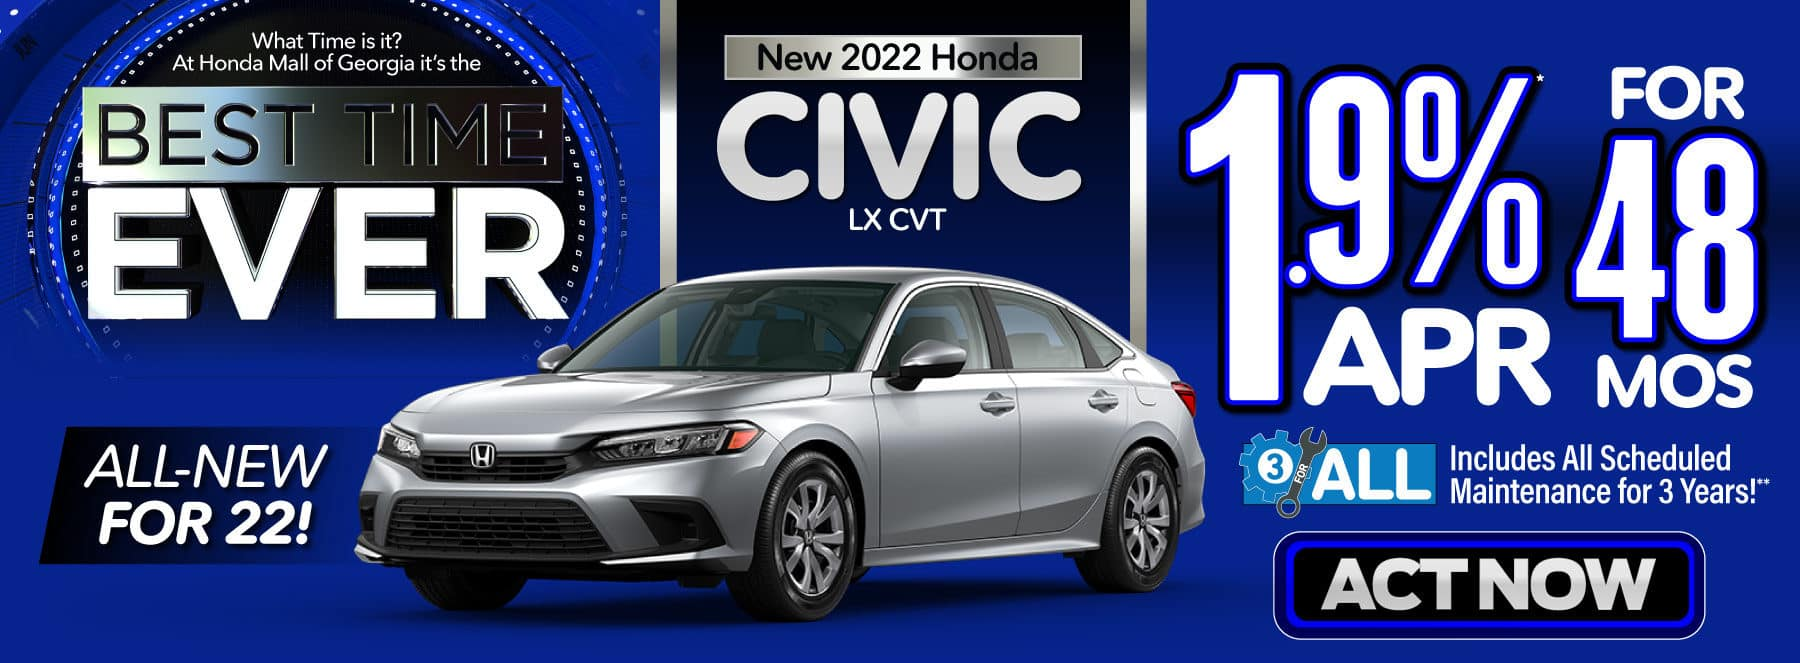 New 2022 Honda Civic - 1.9% APR for 48 months - Act Now